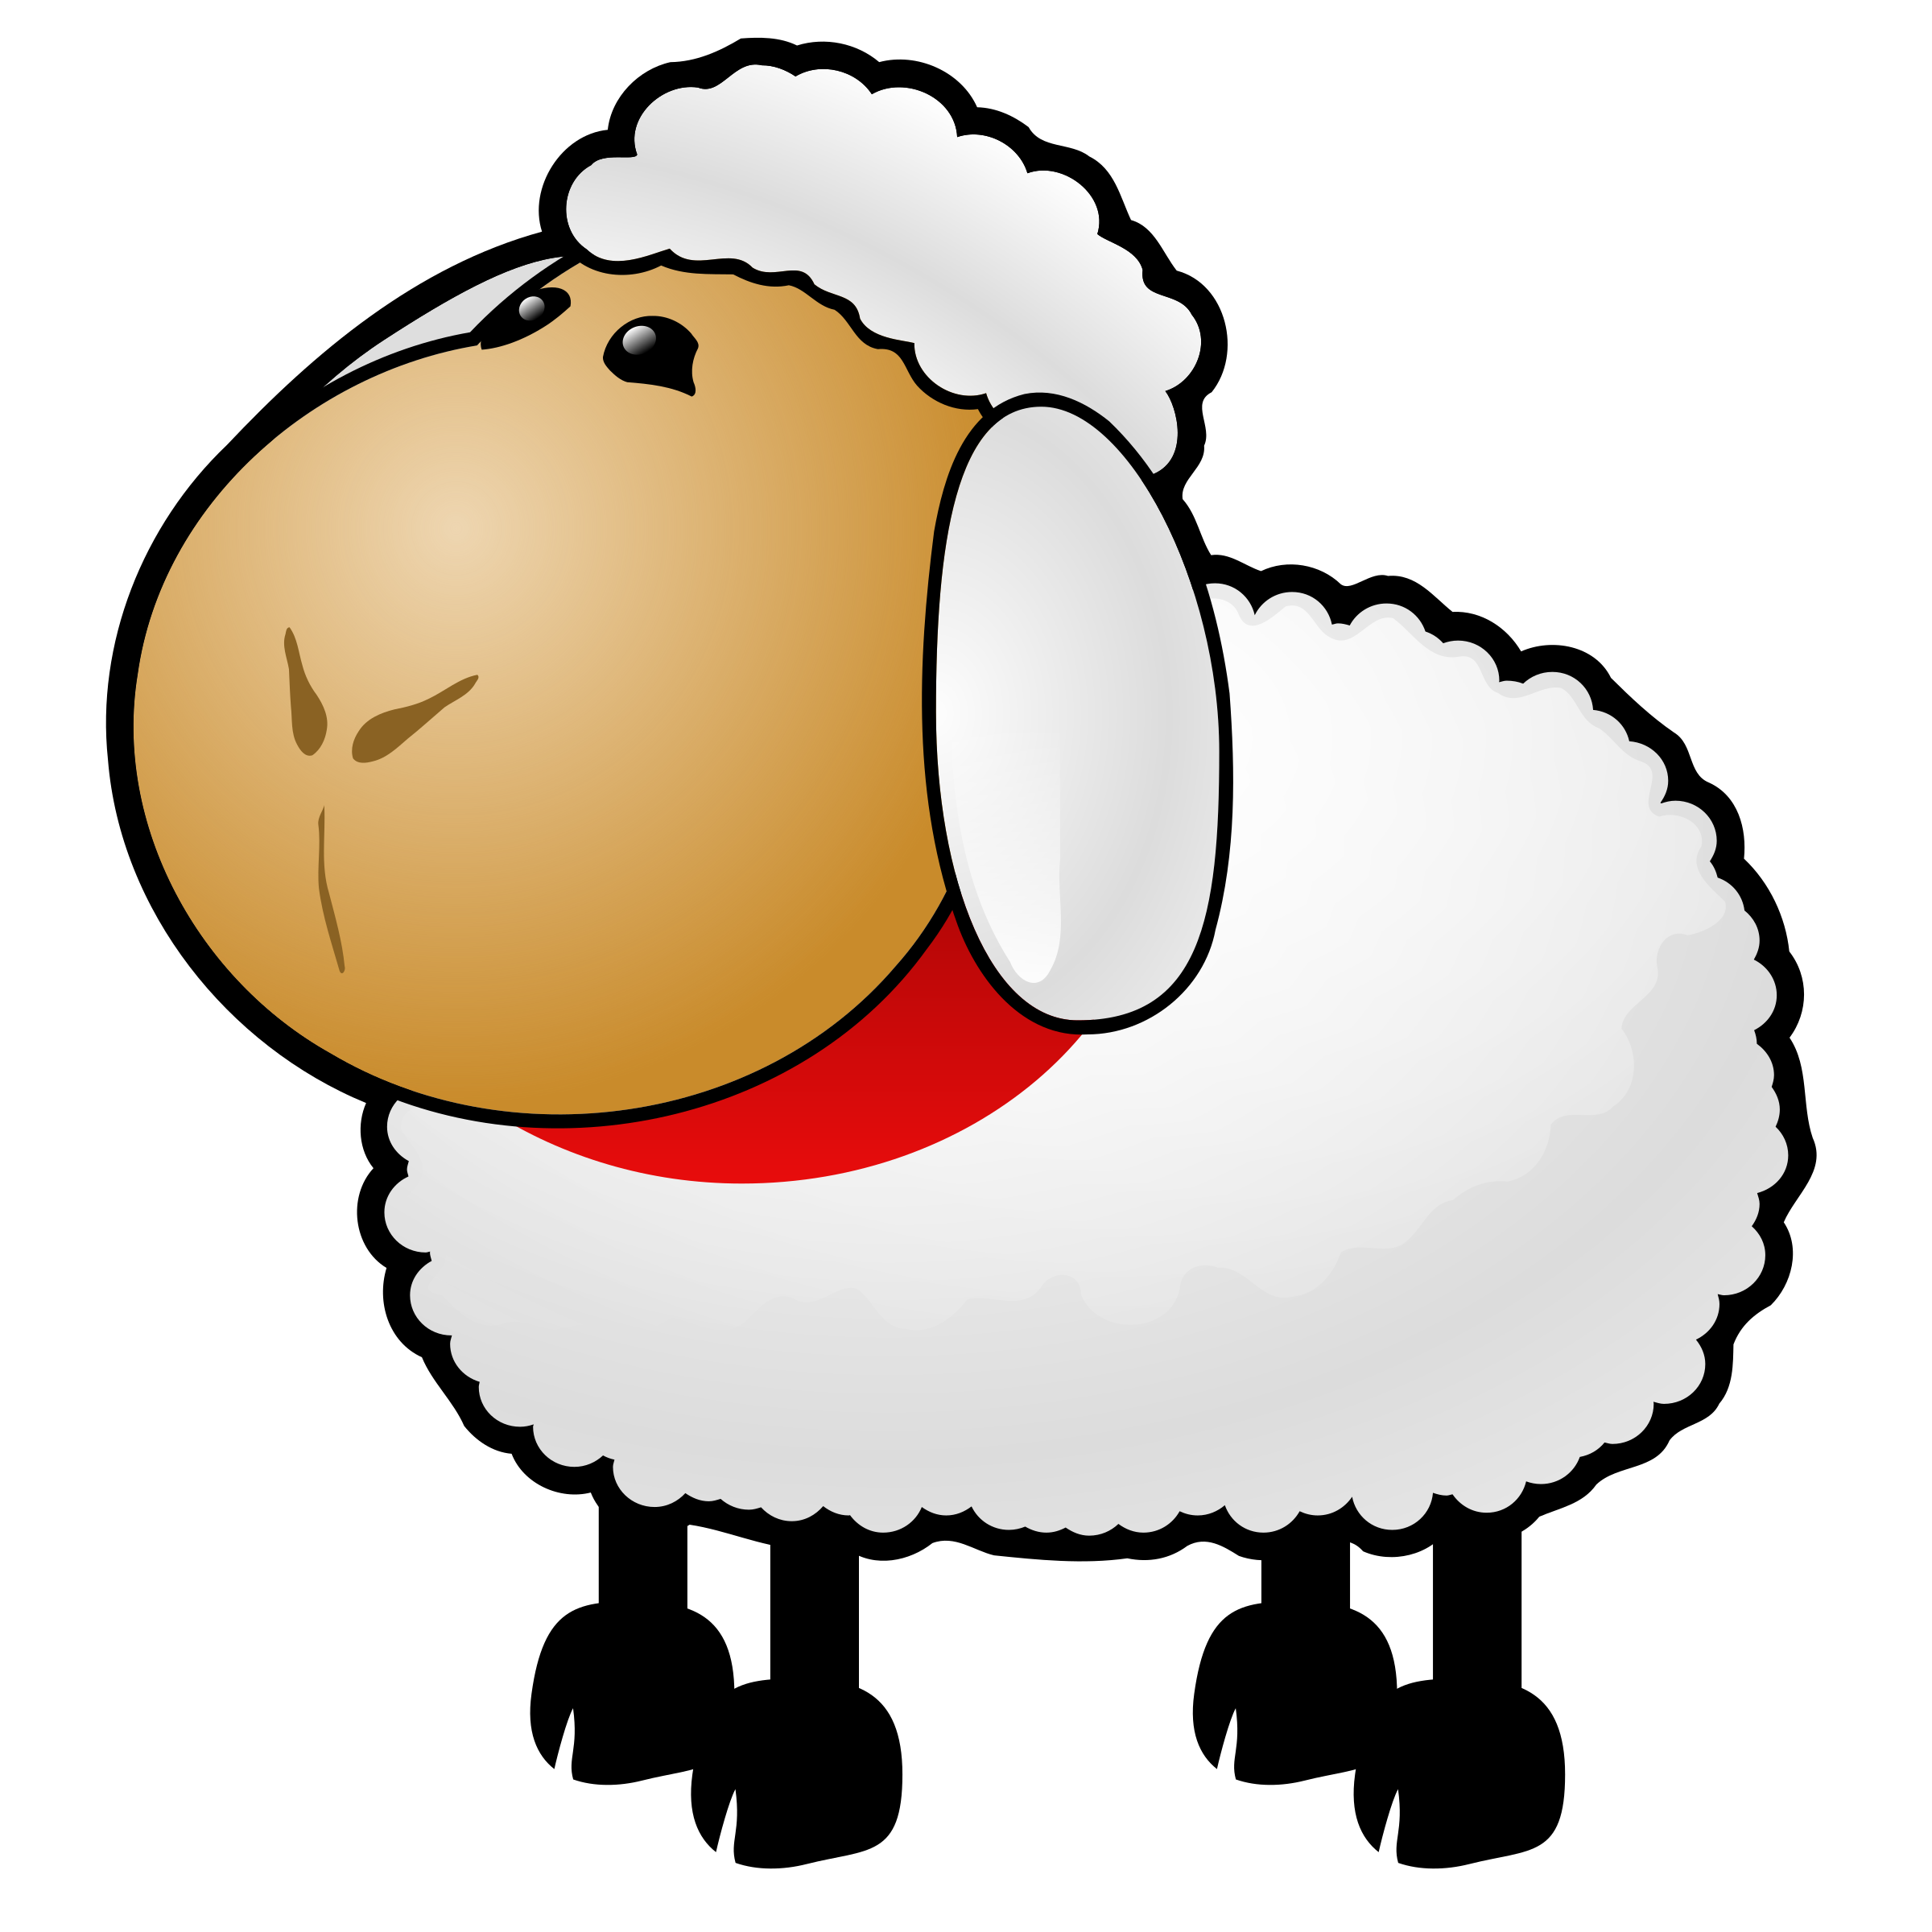 Sheep clipart transparent background. Big image png